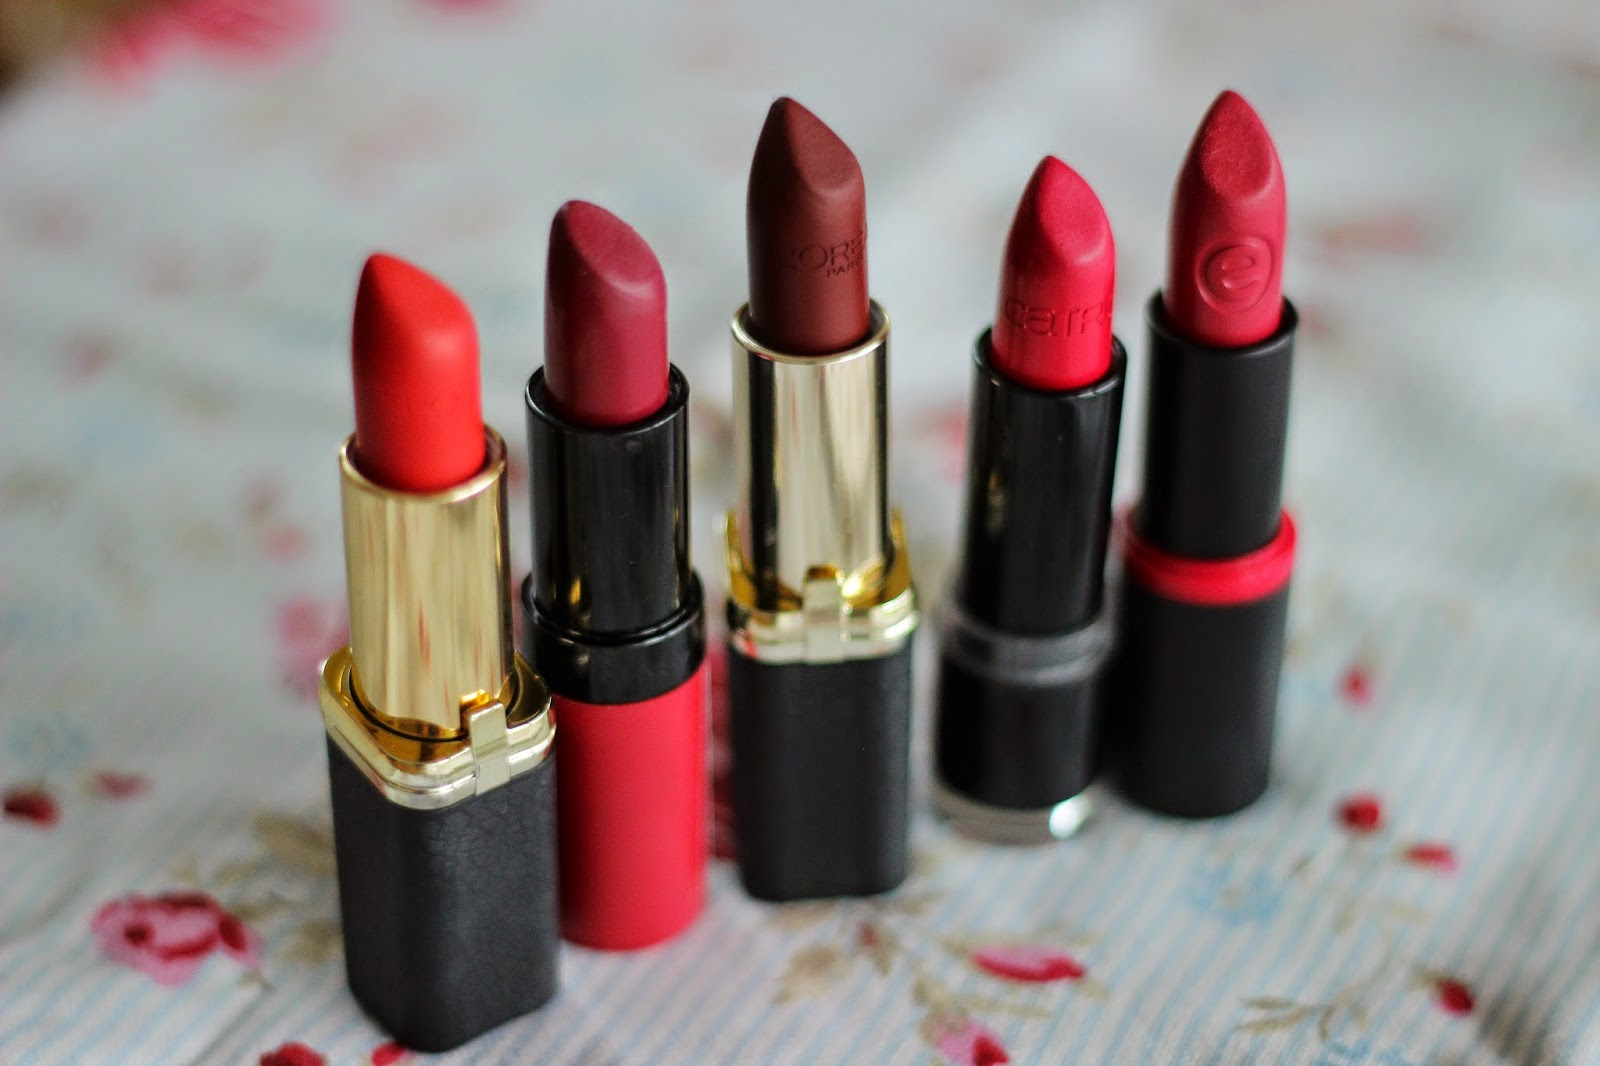 favoriete rode lipsticks